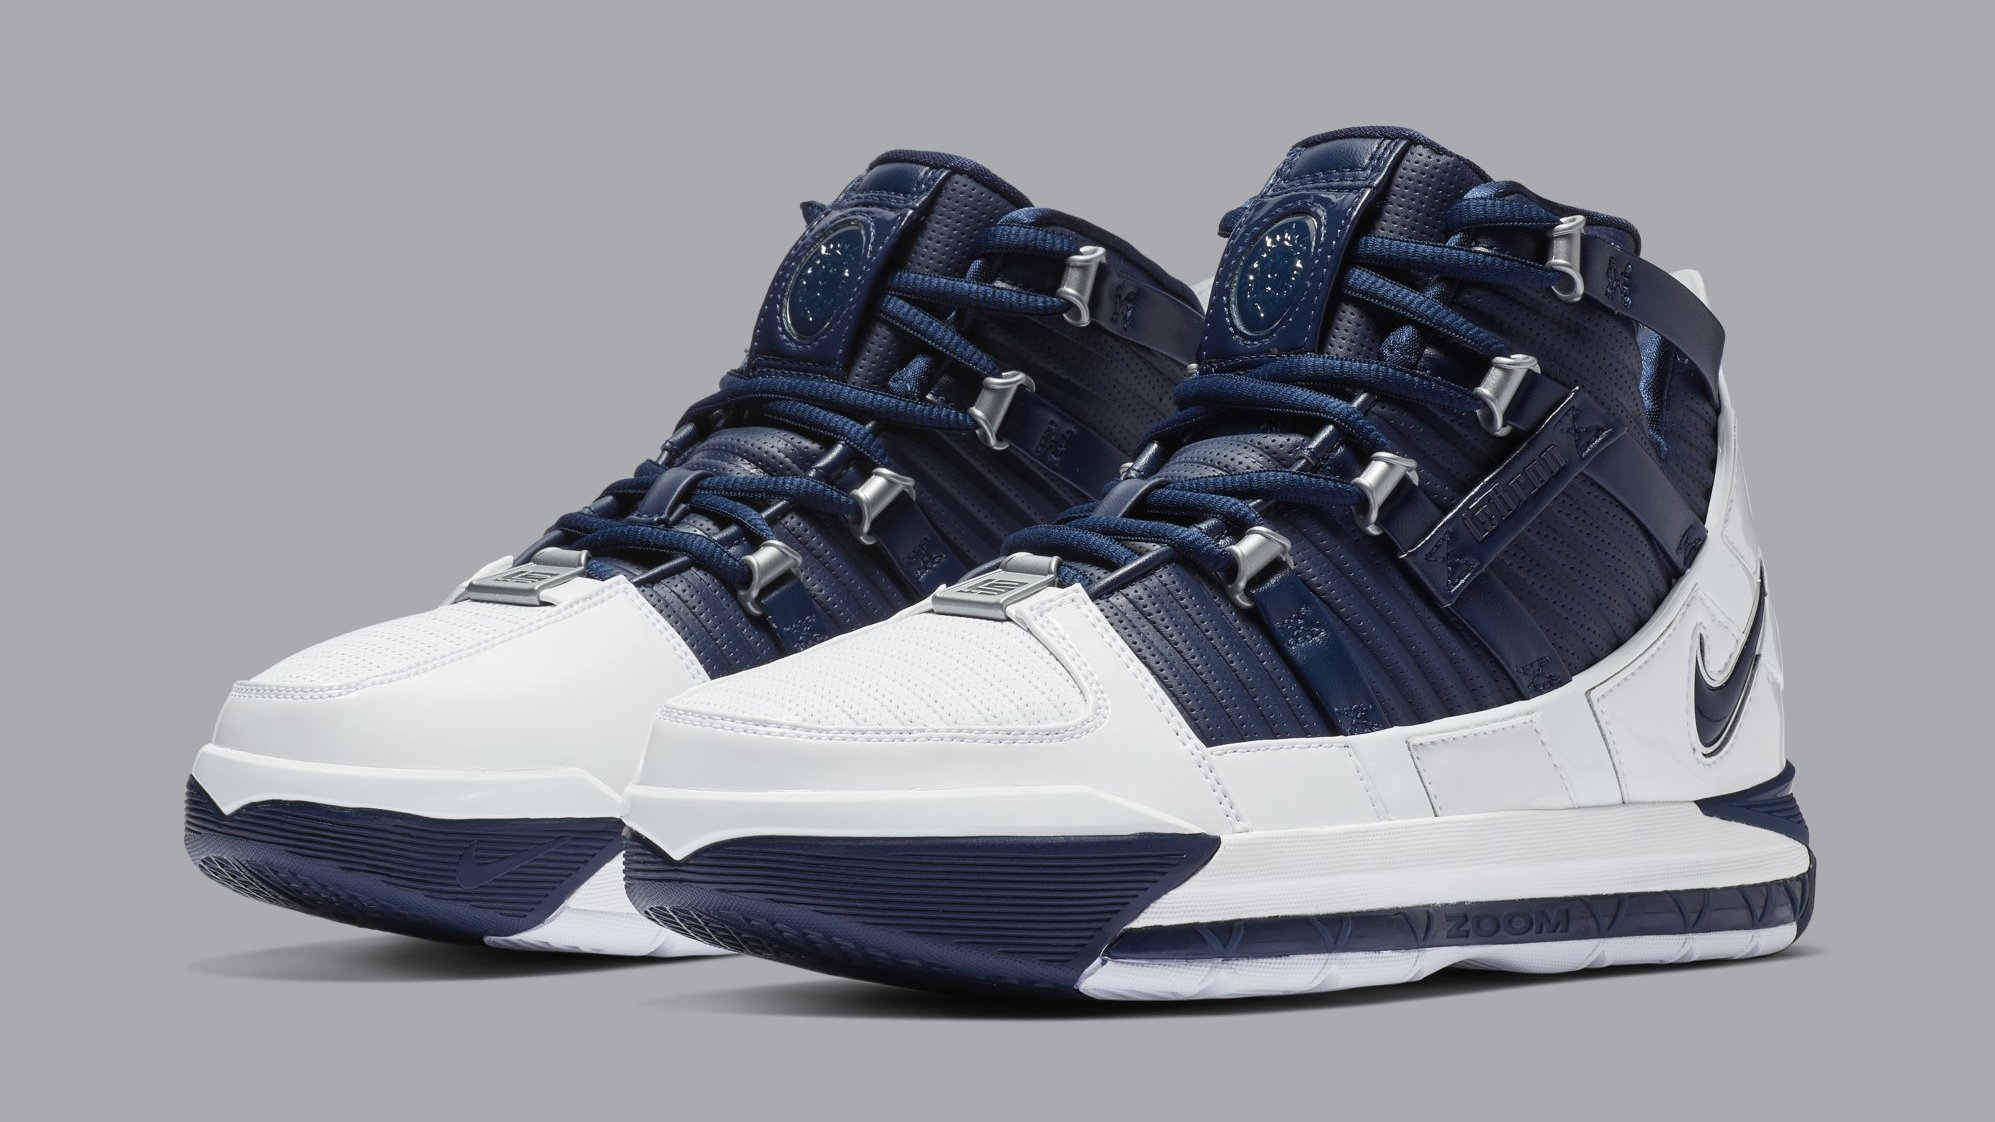 46d5c4512ffde Nike Zoom LeBron 3  White Navy Blue Silver  Release Date